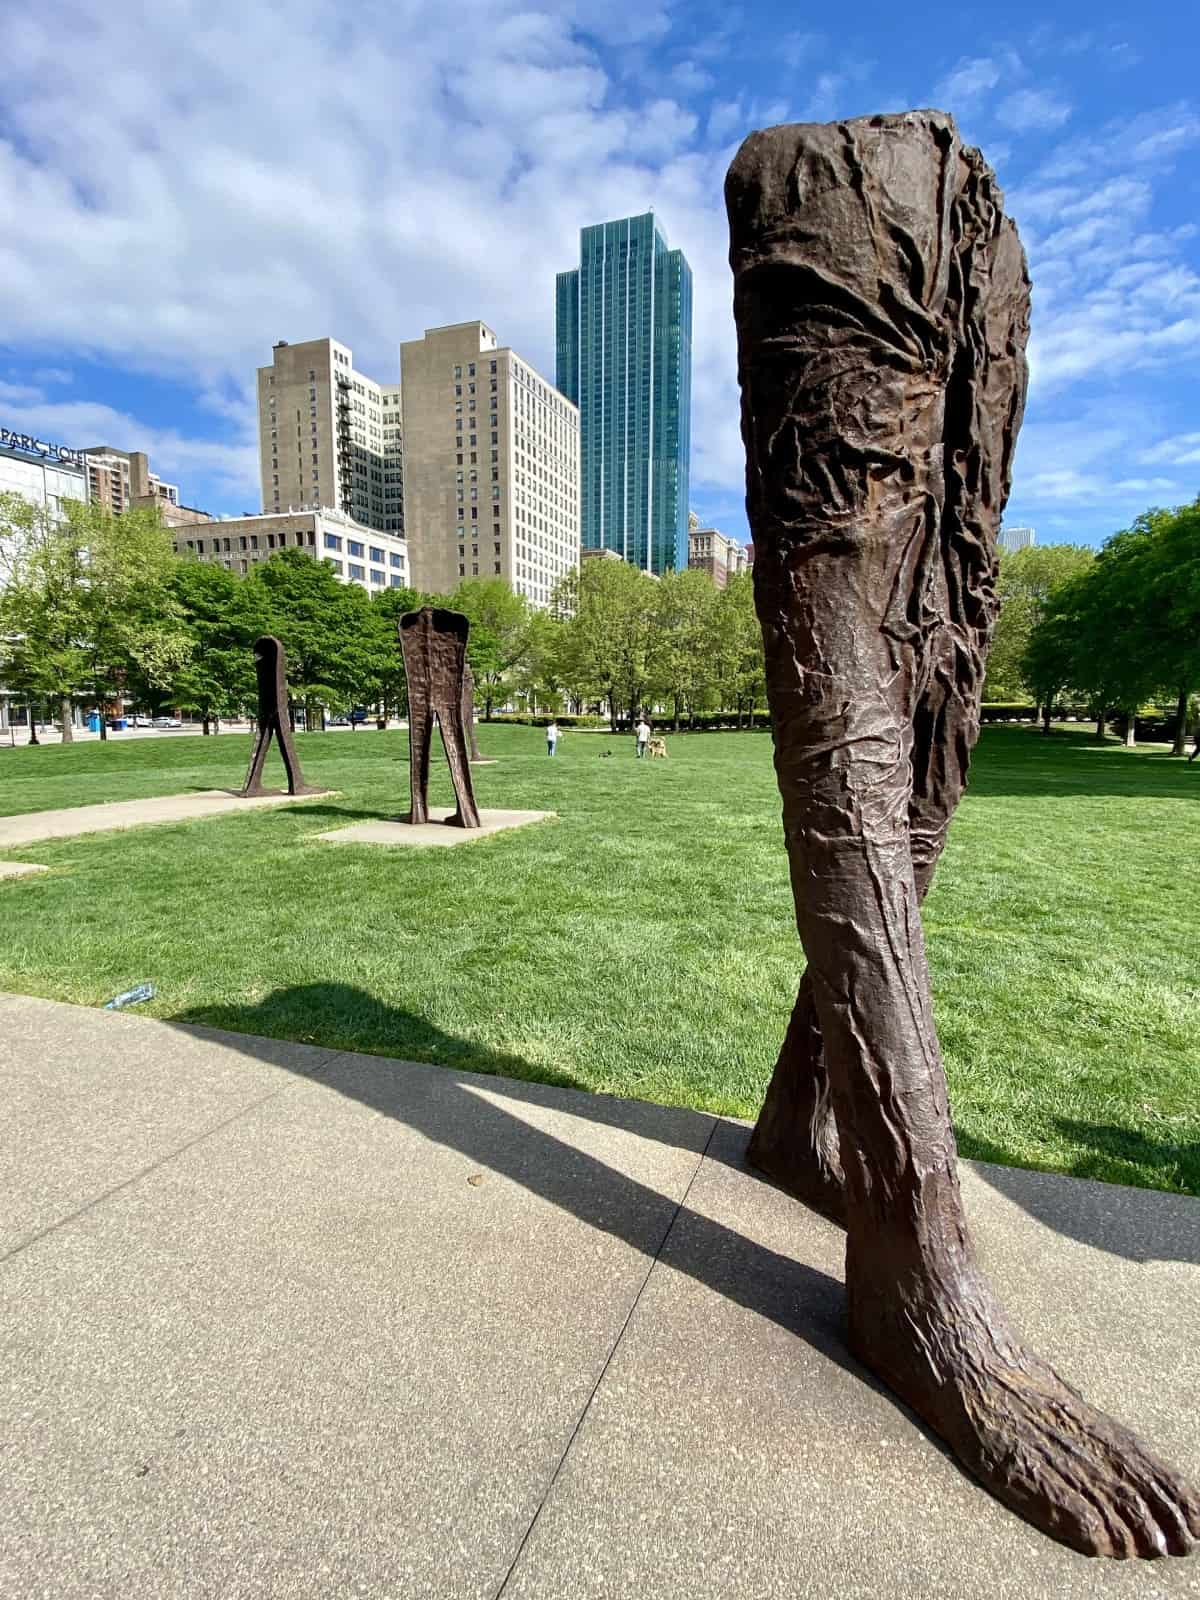 What to do in Chicago - it's a great city for art lovers